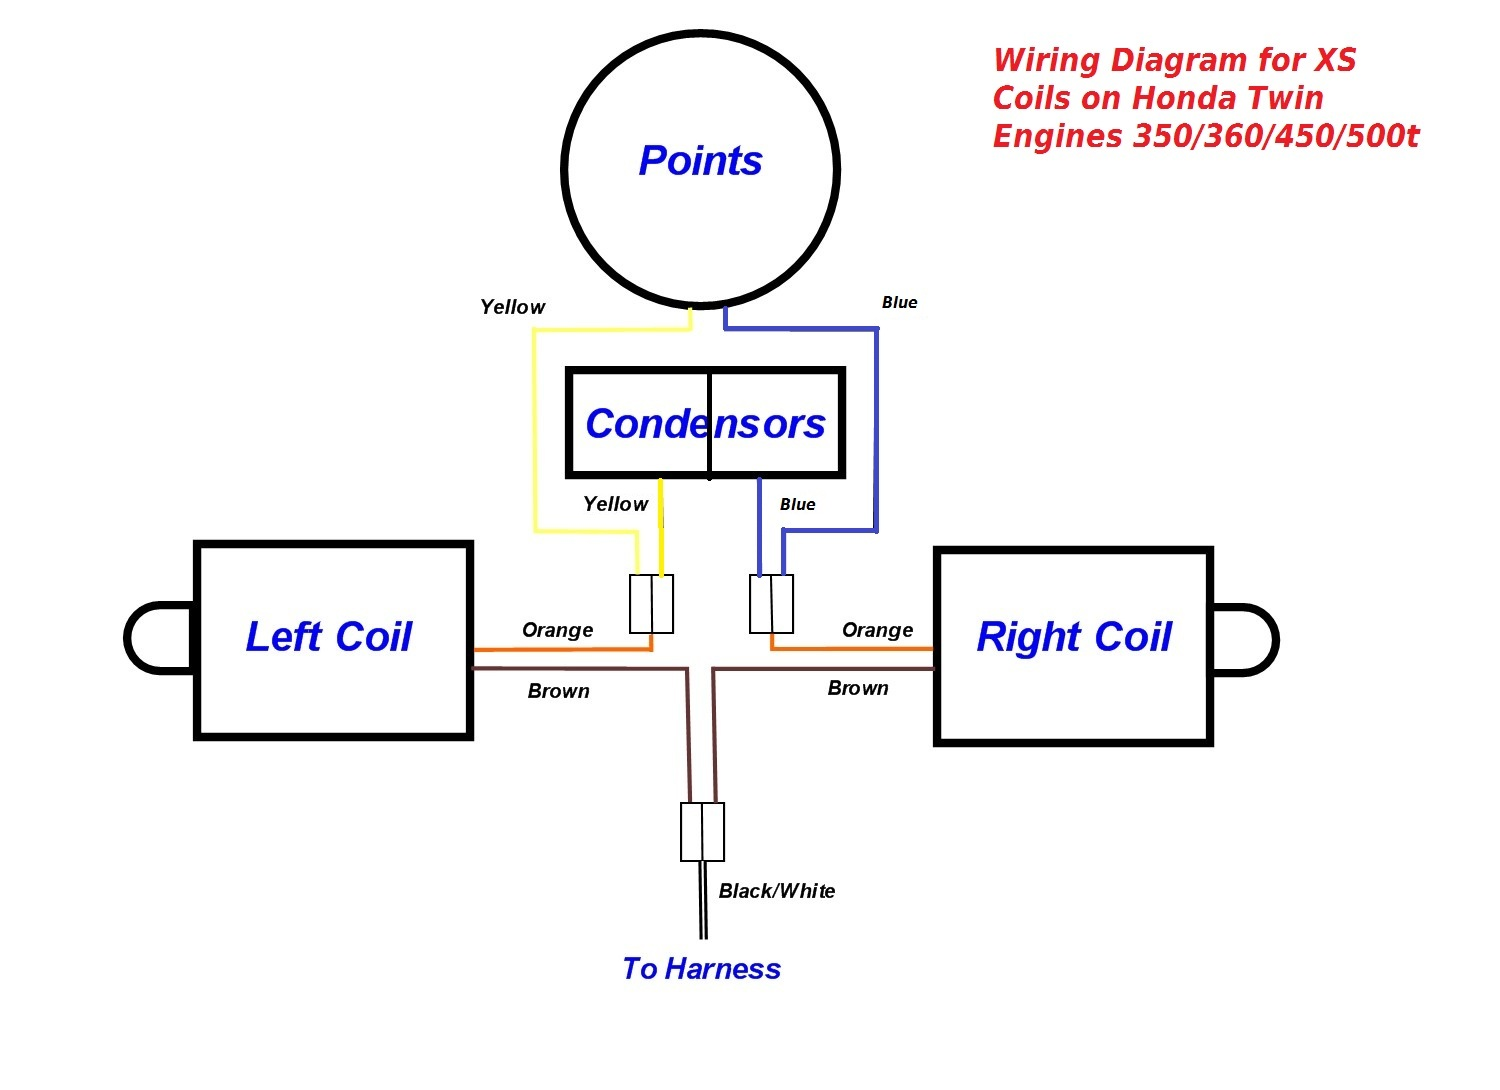 WRG-3497] Xs650 Simple Wiring Diagram Electronic Ignition on